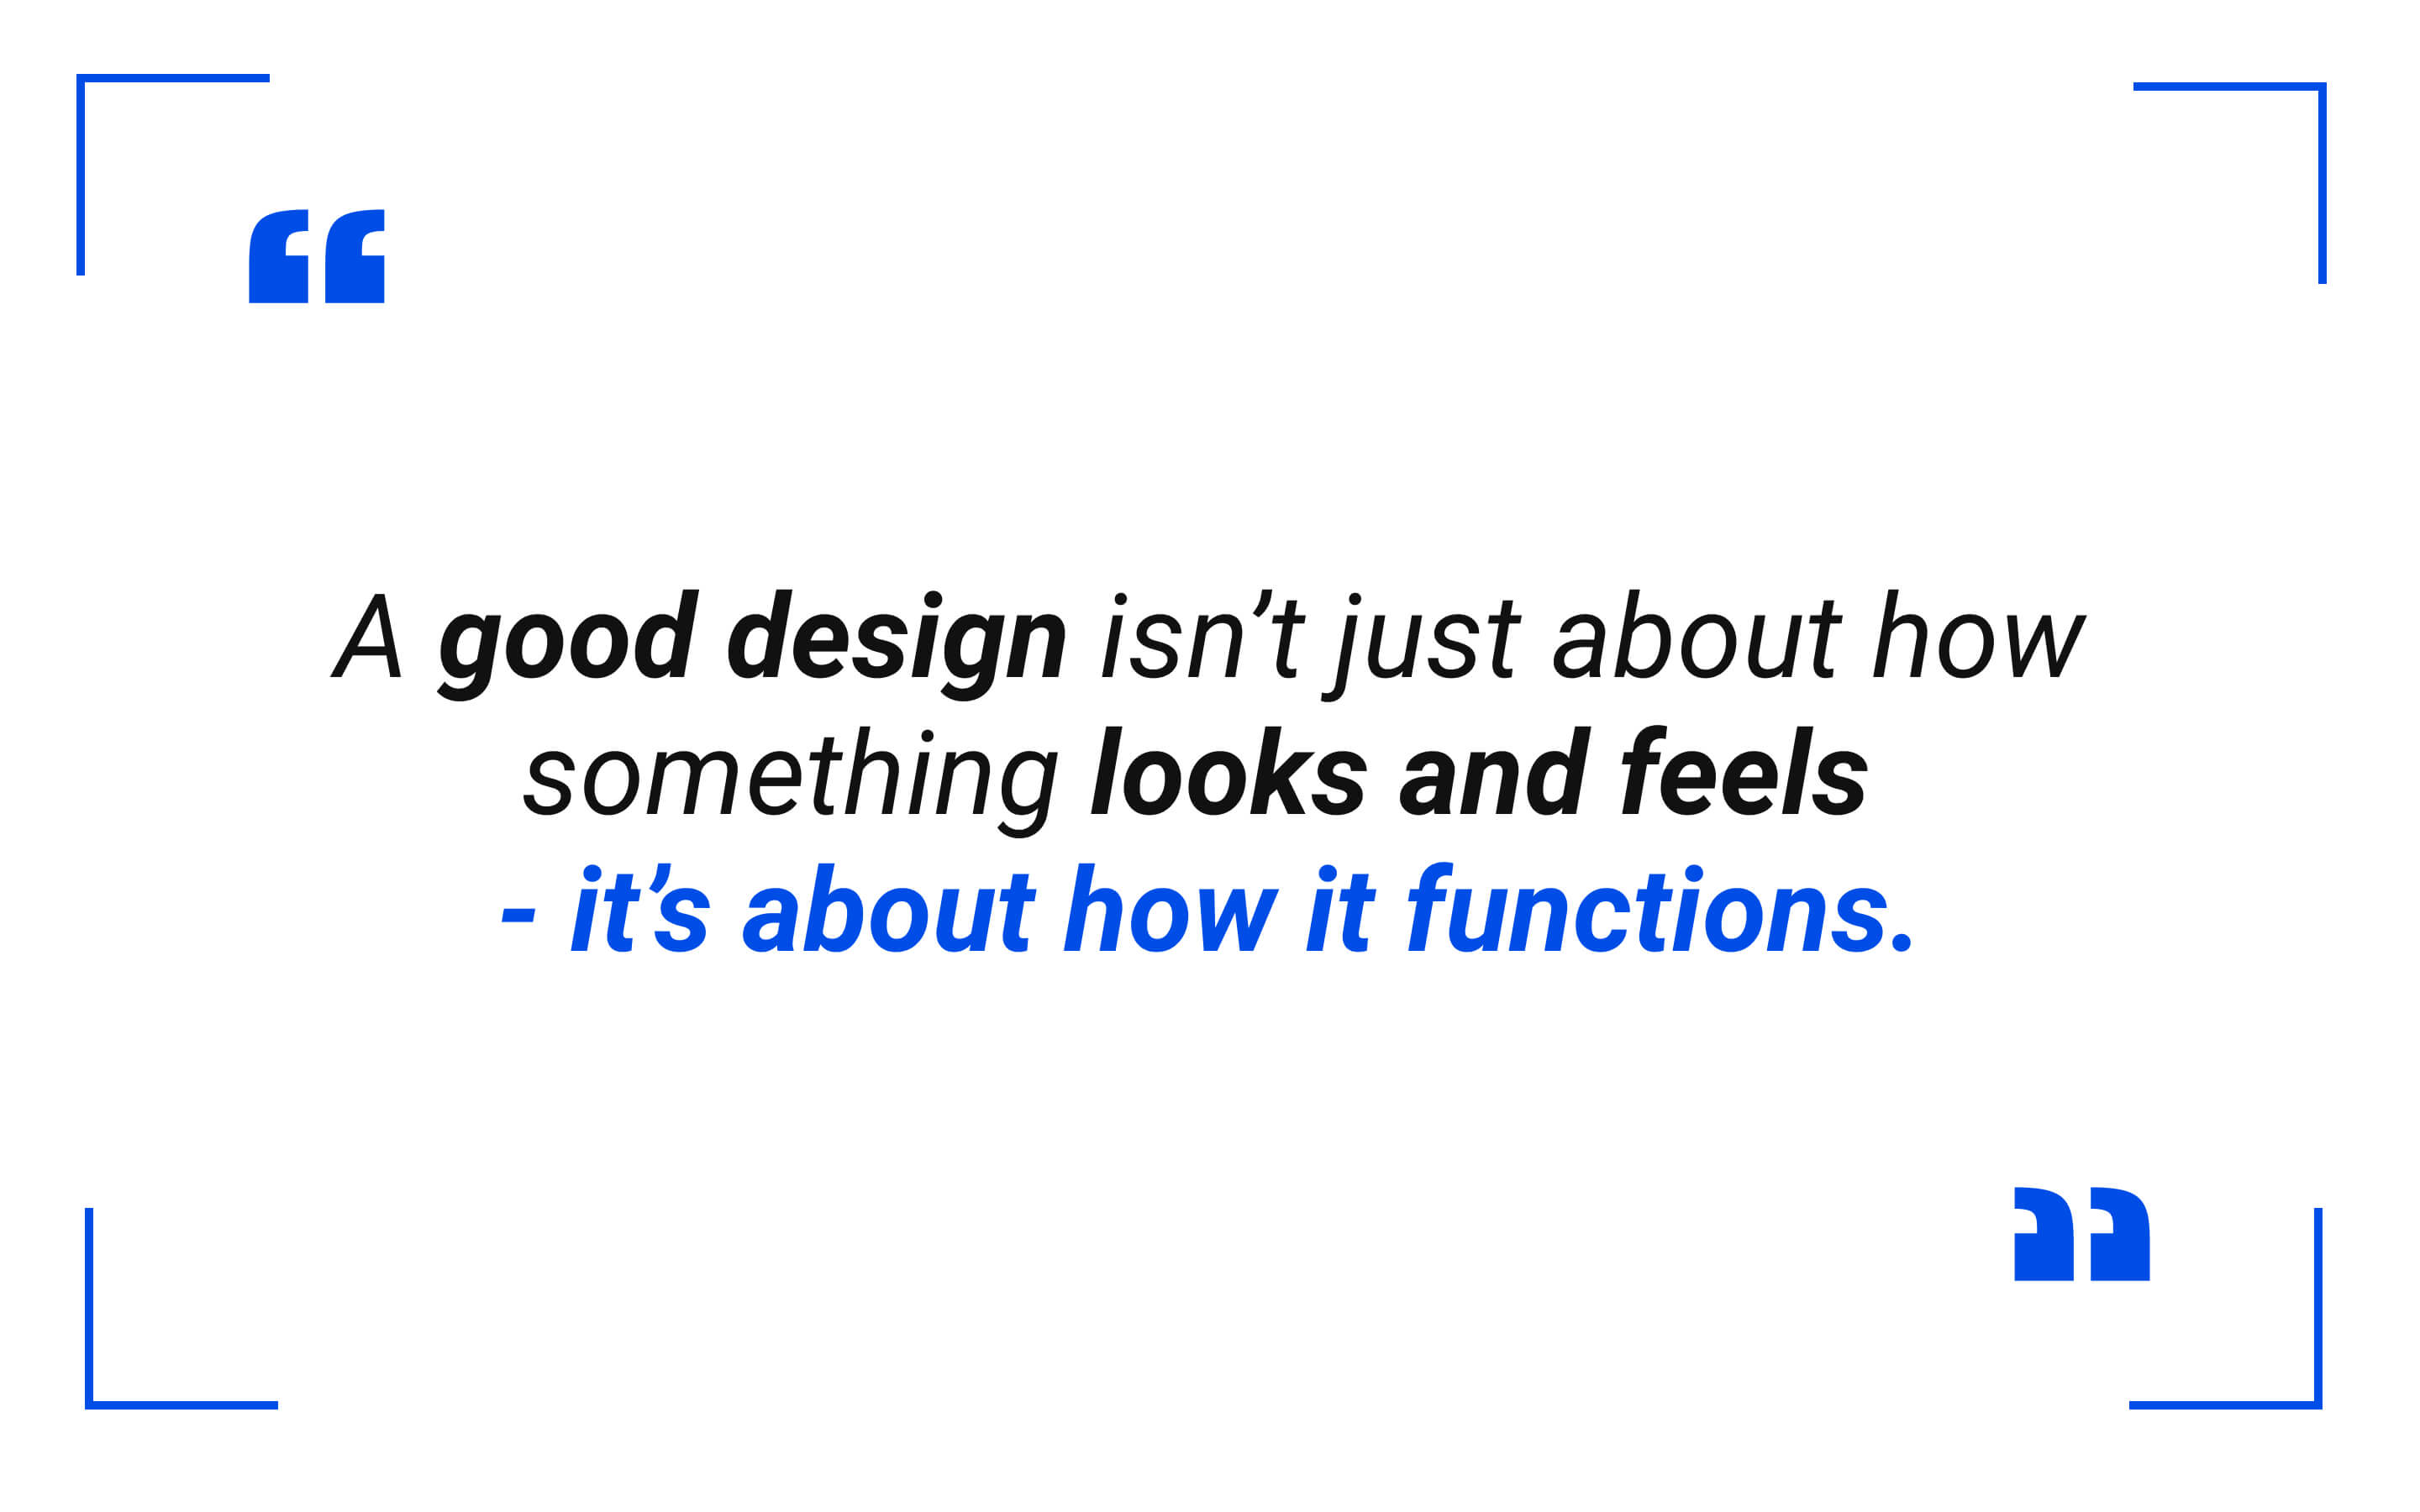 A good design isn't just about how something looks and feels - it's about how it functions.